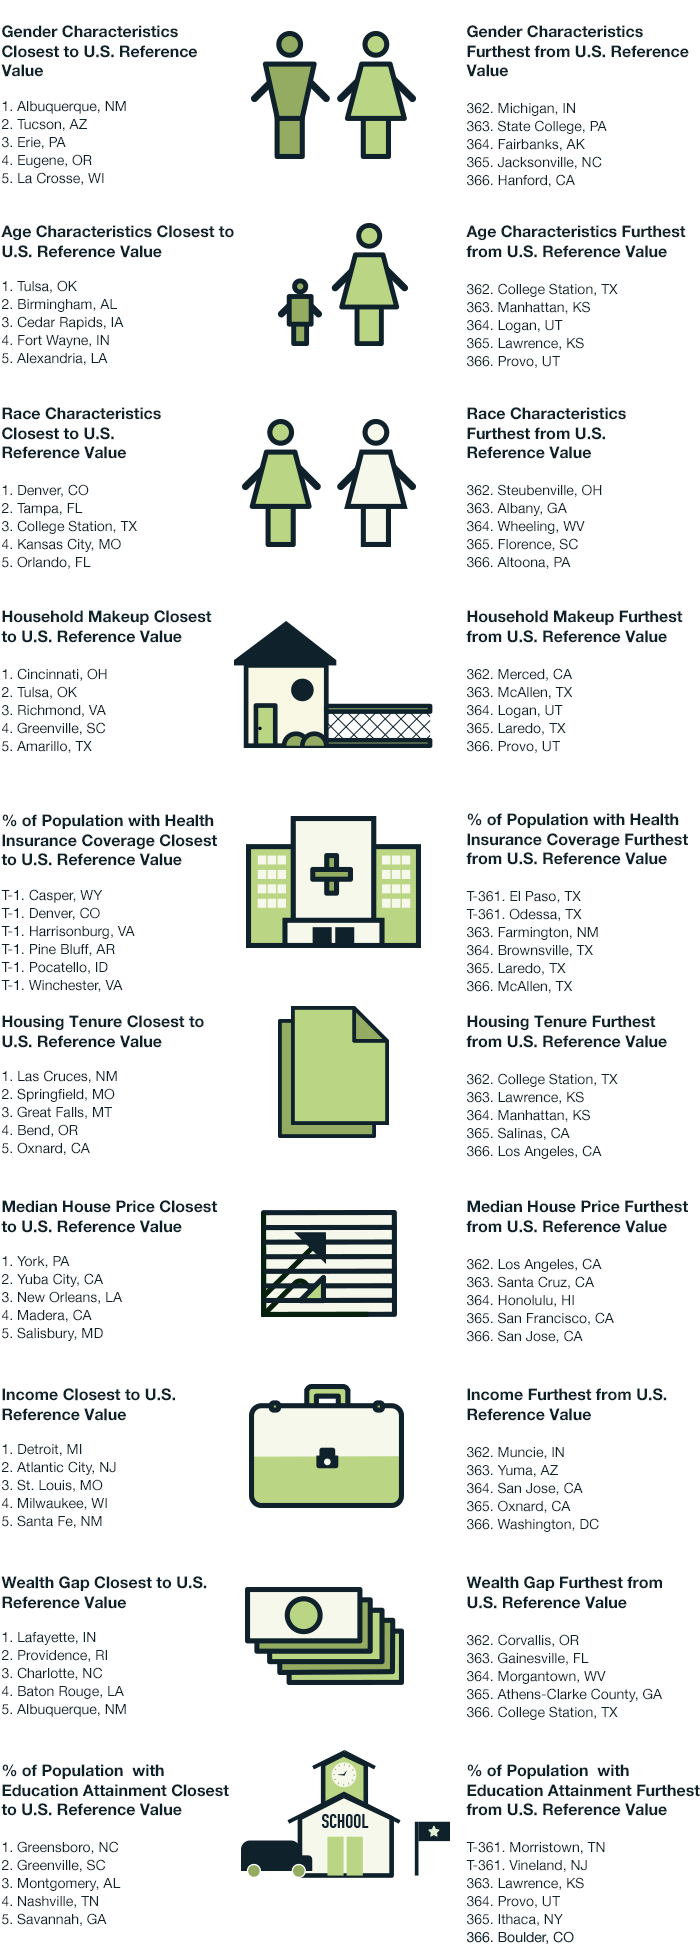 2014's Metro Areas that Most and Least Resemble the U.S.